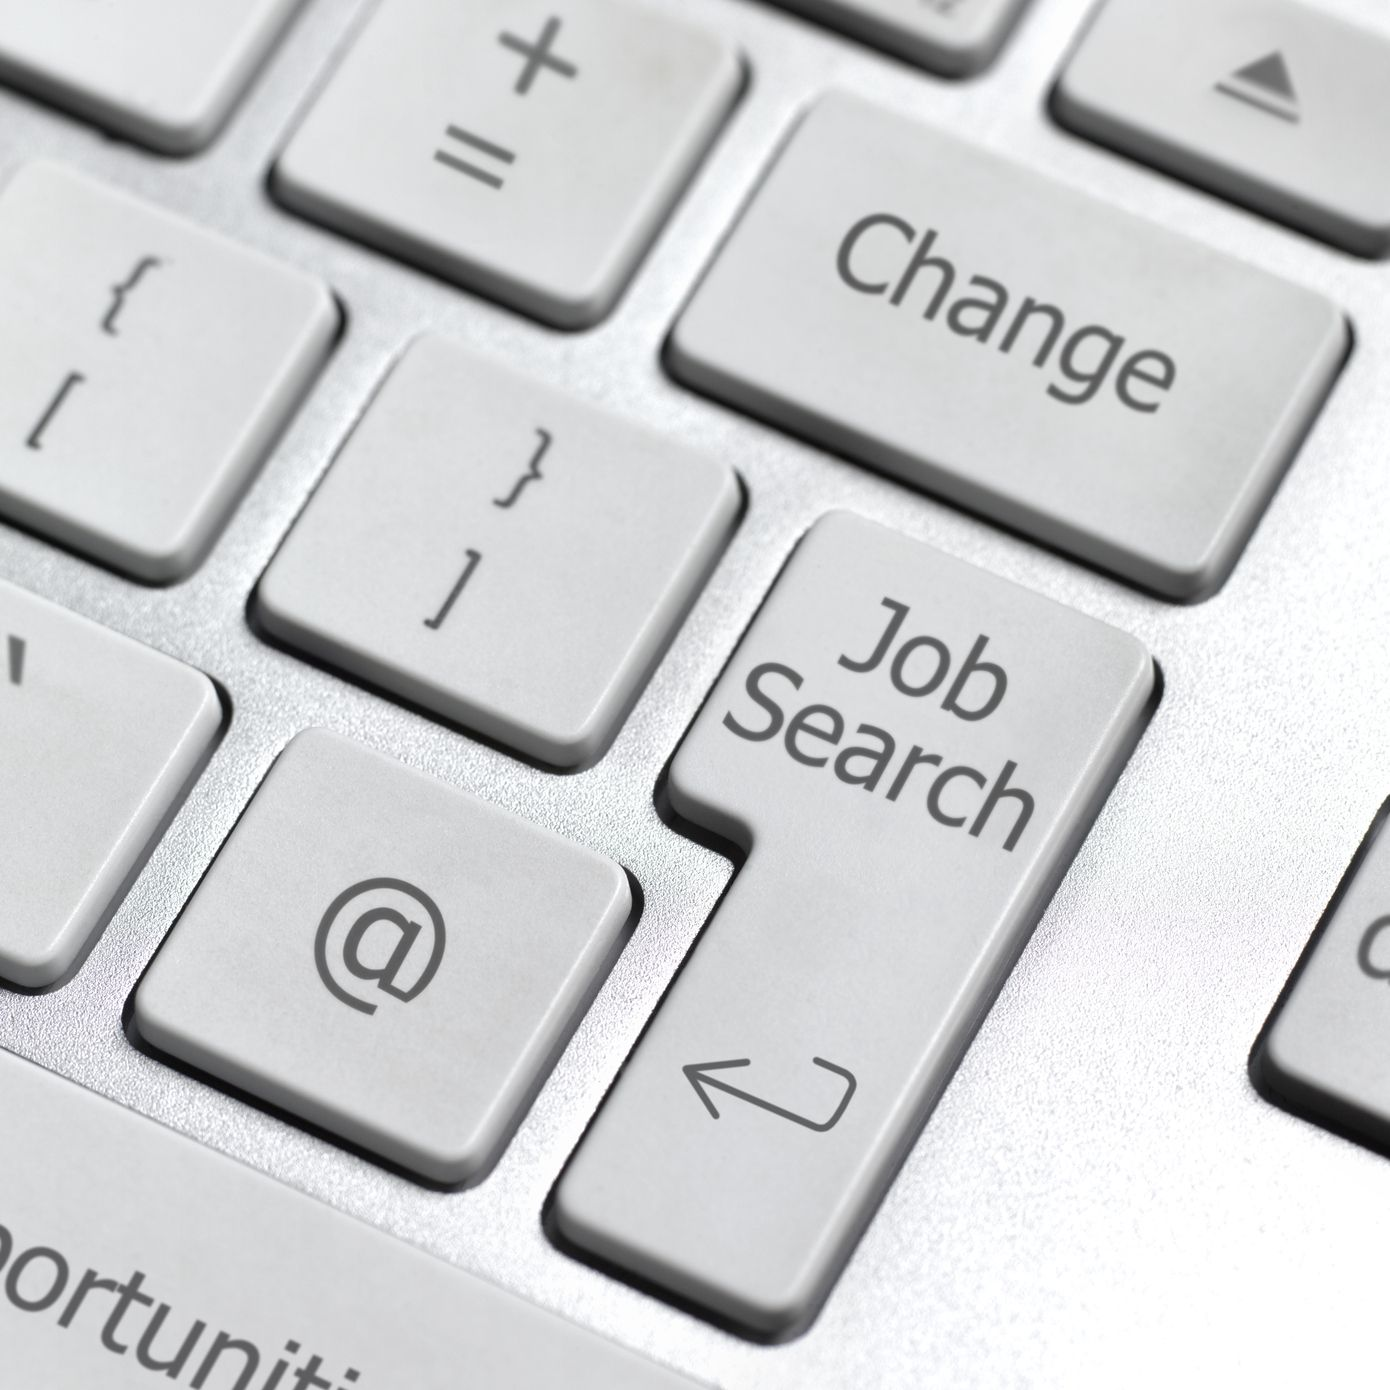 Check out the Job Market Before You Start a Search